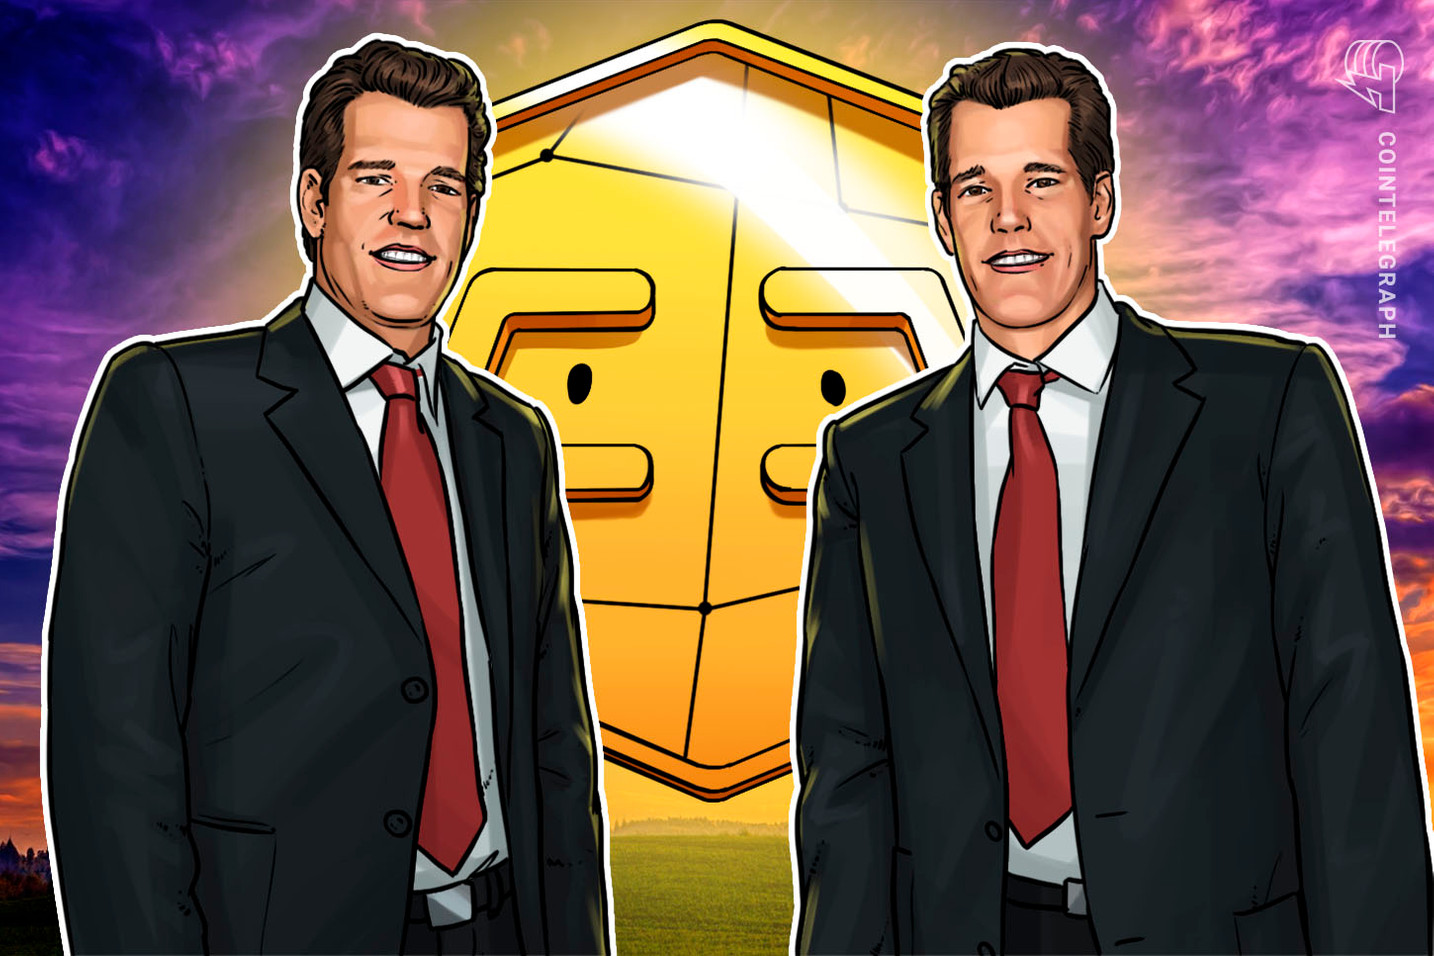 'Bitcoin Billionaires' Movie to Tell Winklevoss Bros' Crypto Story